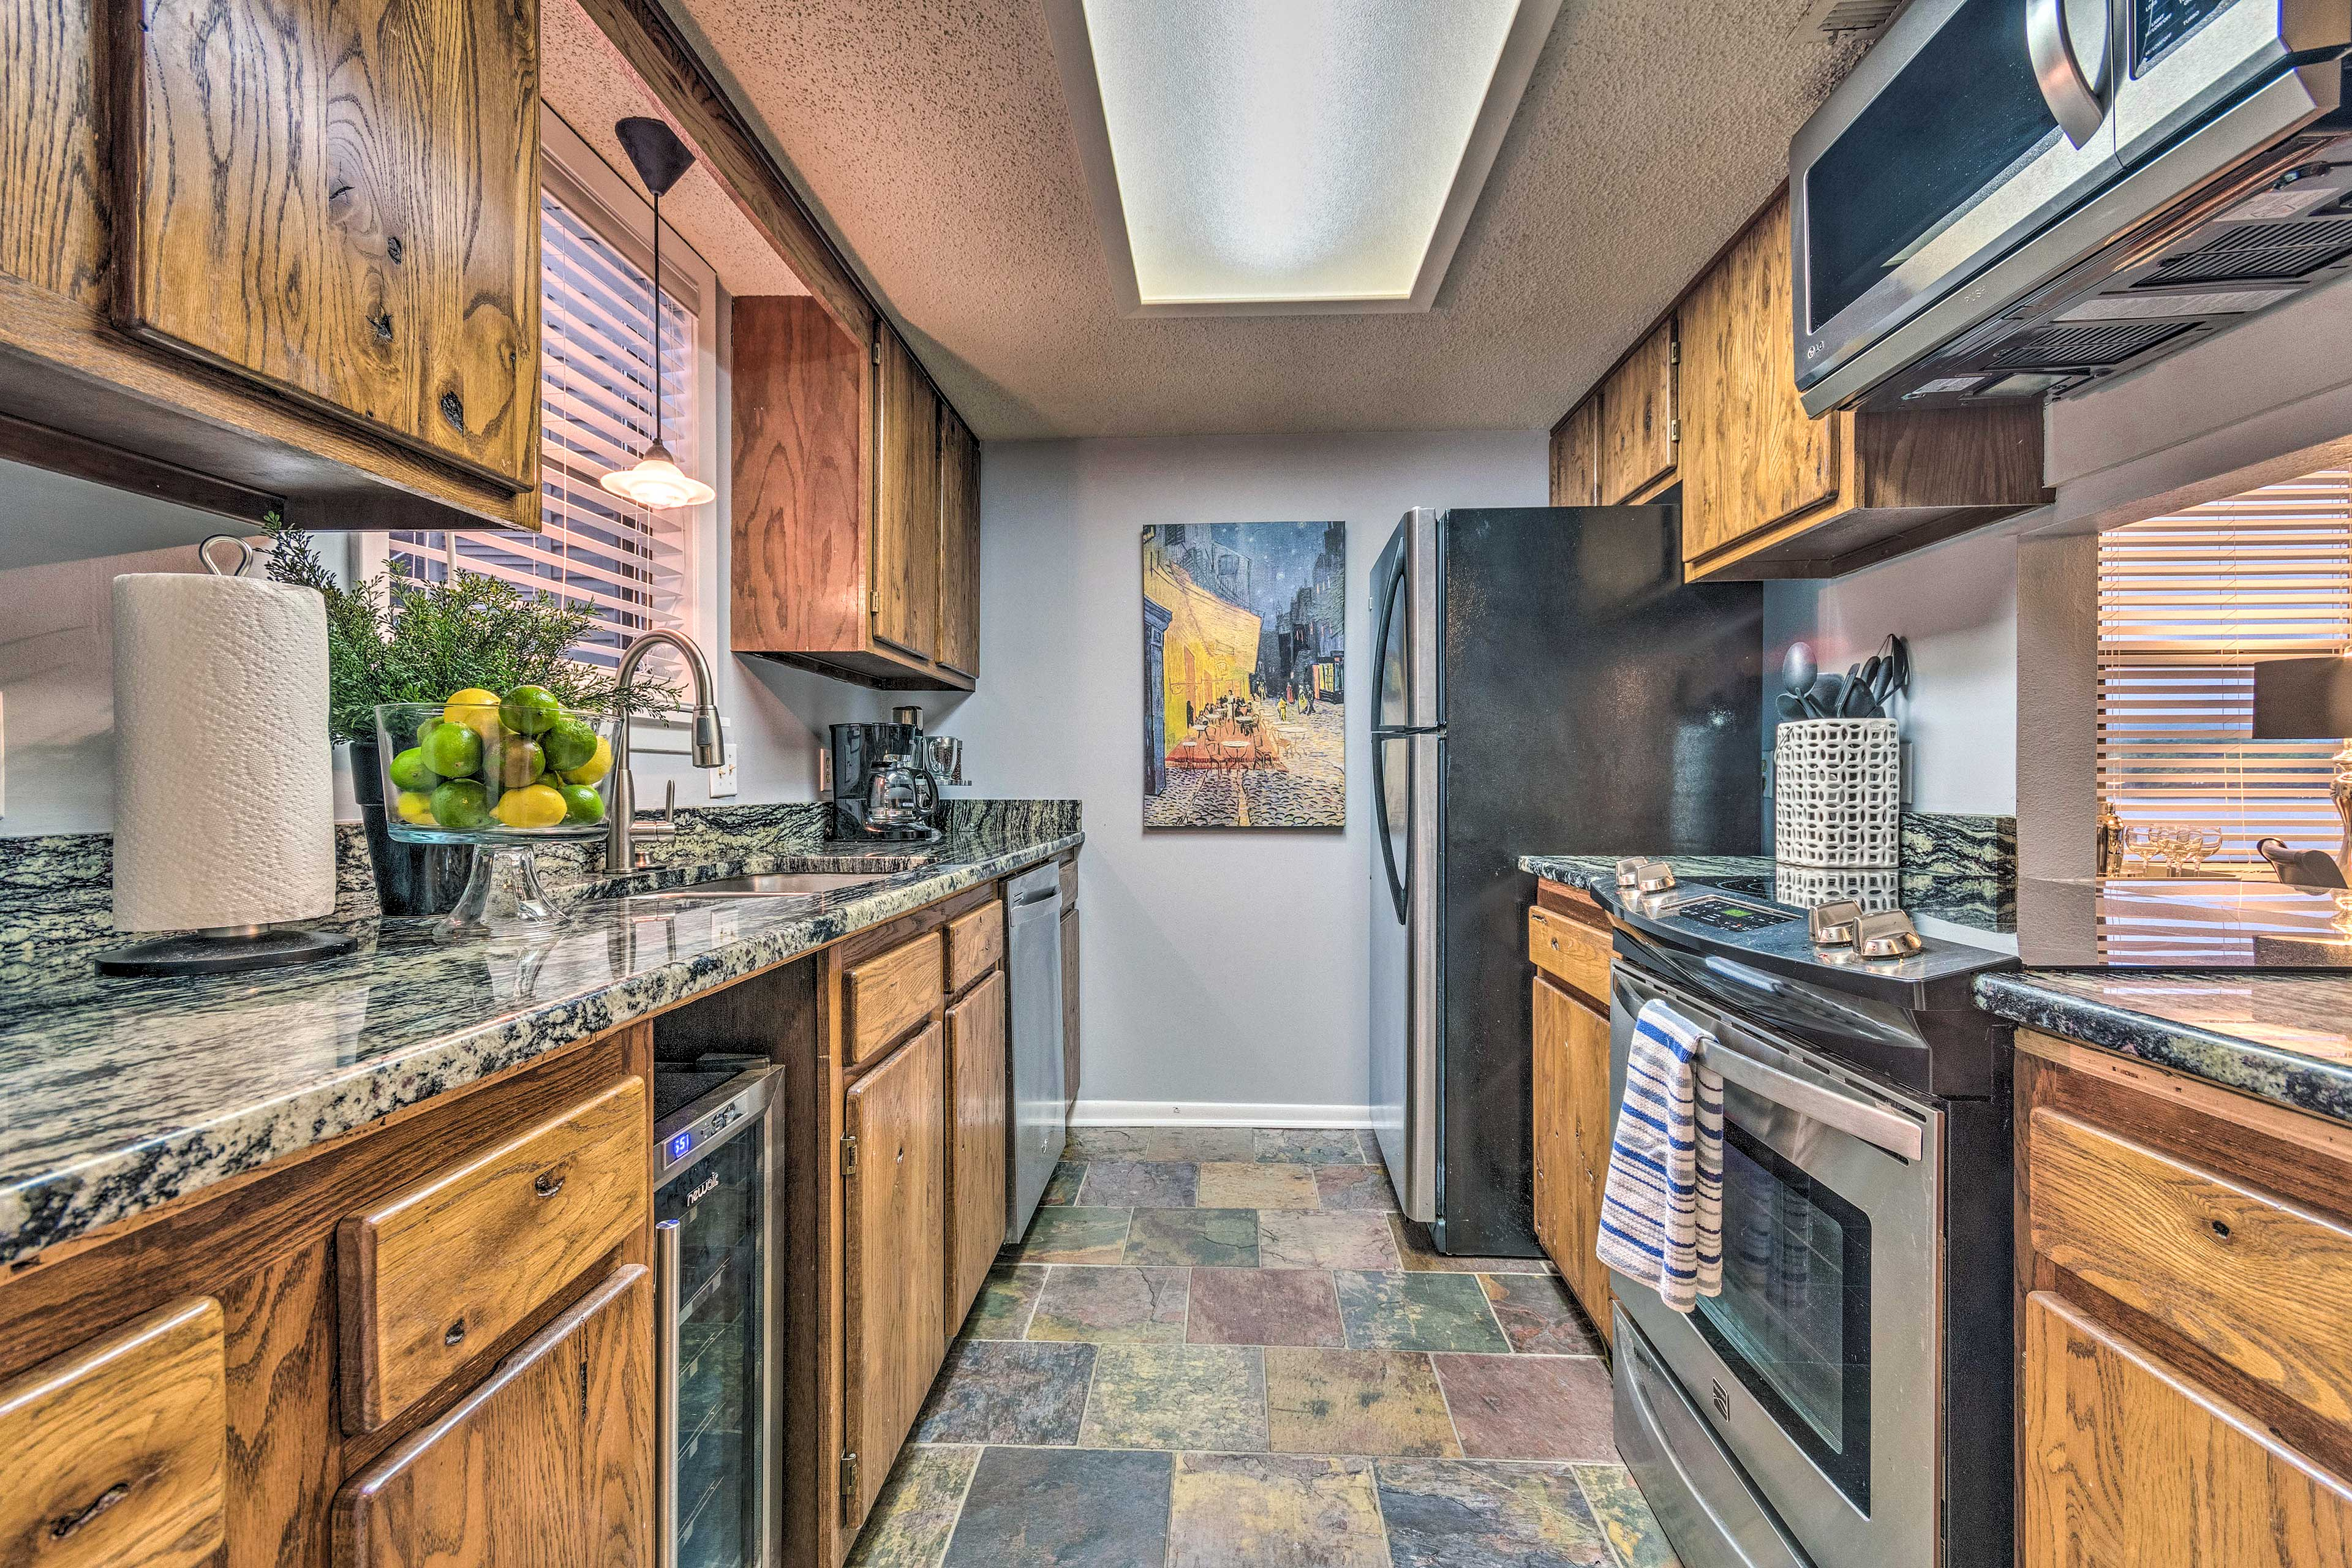 This 2-bed, 2-bath unit has been recently remodeled.